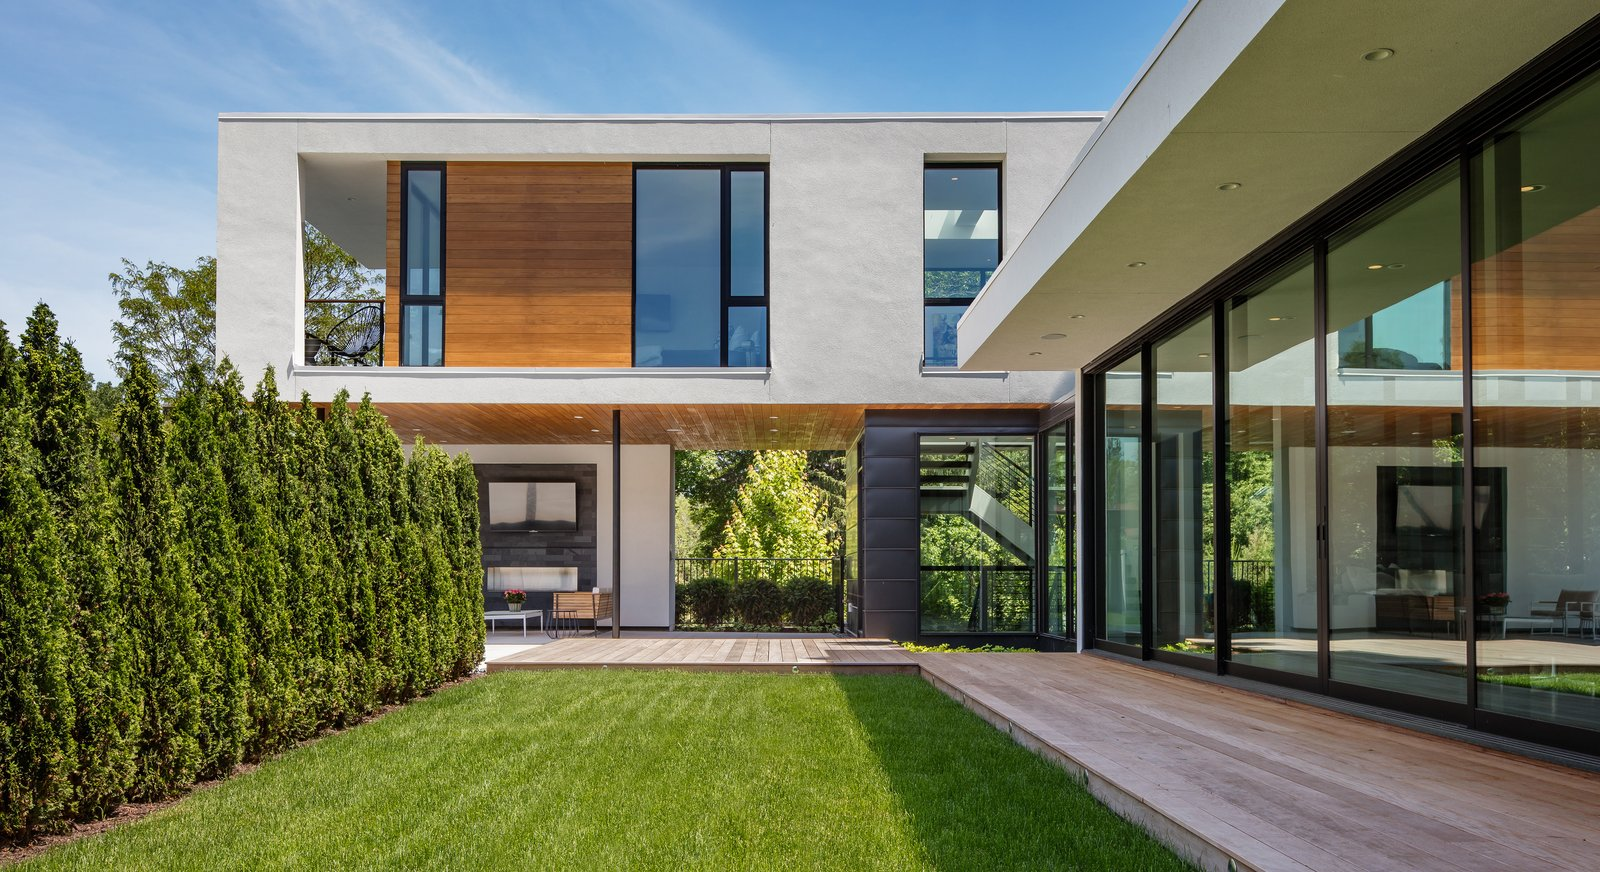 Tagged: Trees, Gardens, Walkways, Side Yard, Wood Patio, Porch, Deck, Exterior, Metal, Sliding Door Type, Windows, Picture Window Type, Casement Window Type, and Awning Window Type.  Calhoun Pavilions Residence by Peterssen/Keller Architecture